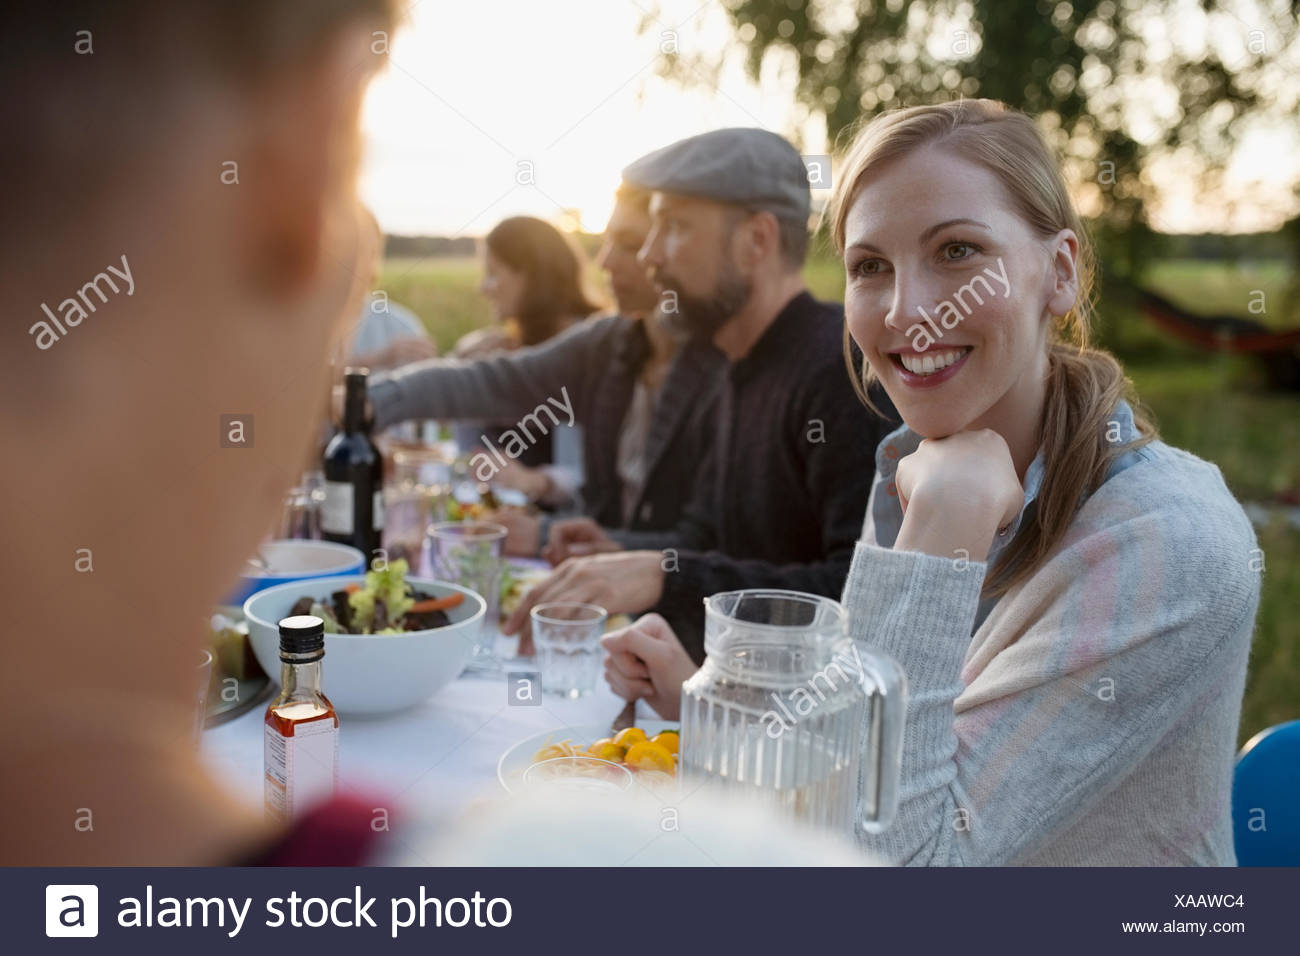 Smiling woman talking to friend, enjoying garden party dinner - Stock Image